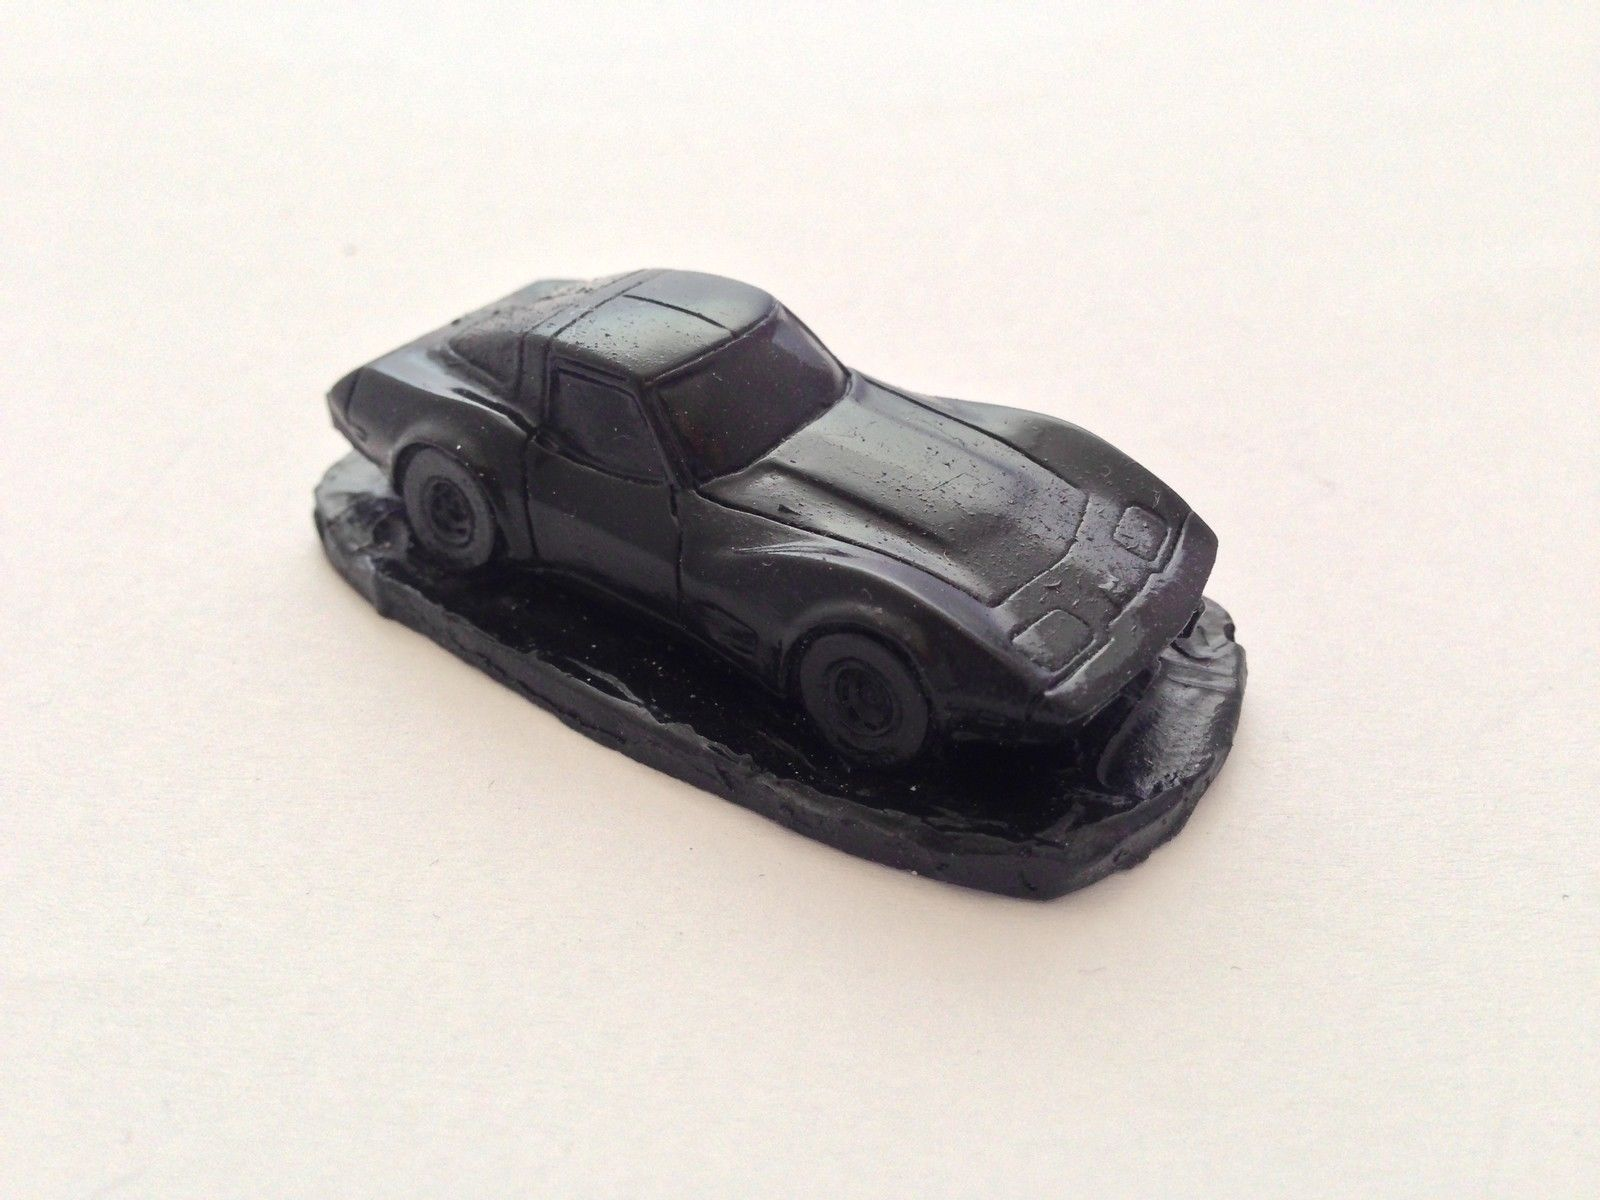 Primary image for Chevrolet Corvette circa 1979 ref35 1:92 Scale Model Car Handmade In Sheffield